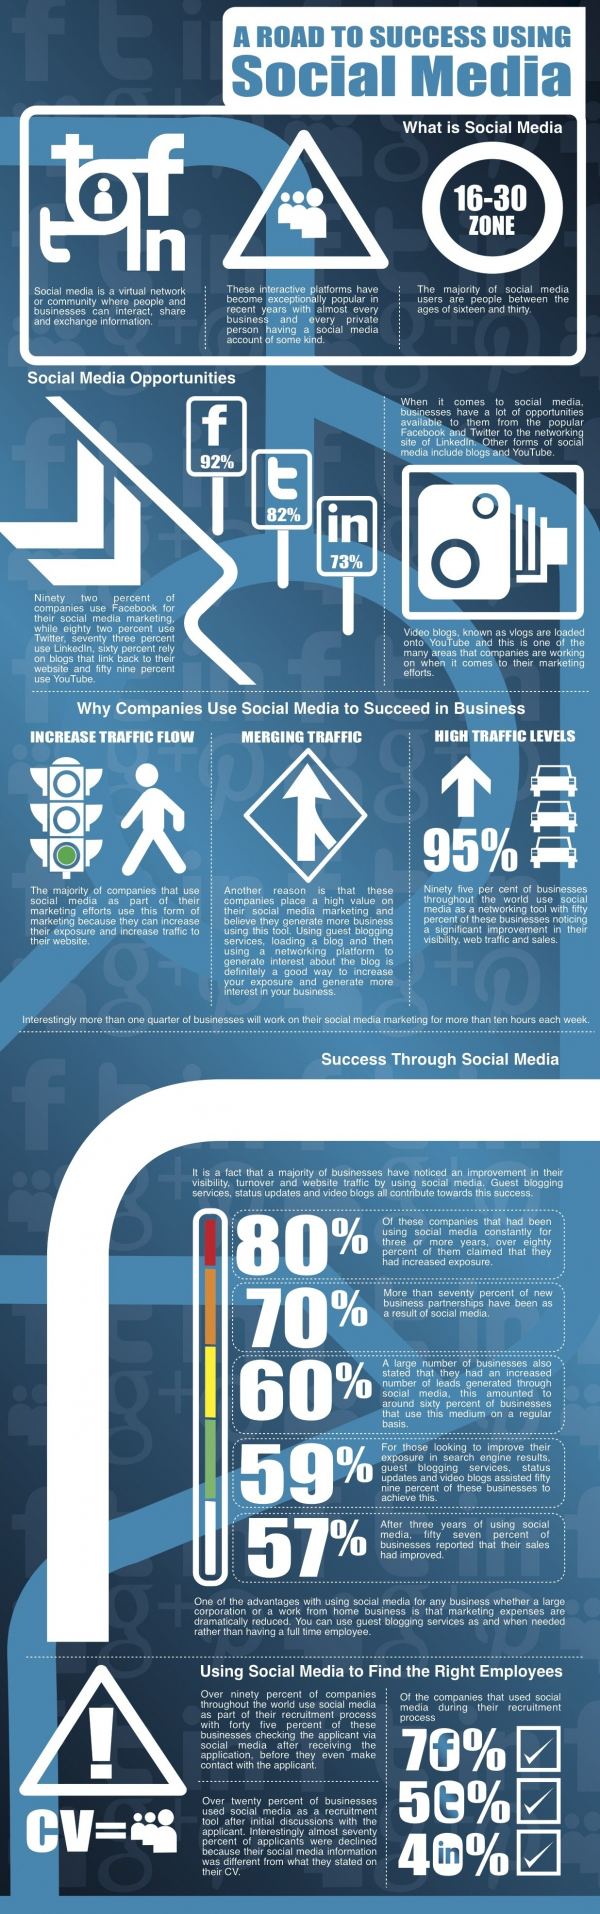 A Road To Succes Using Social Media. #evokad #socialMedia #médiasSociaux